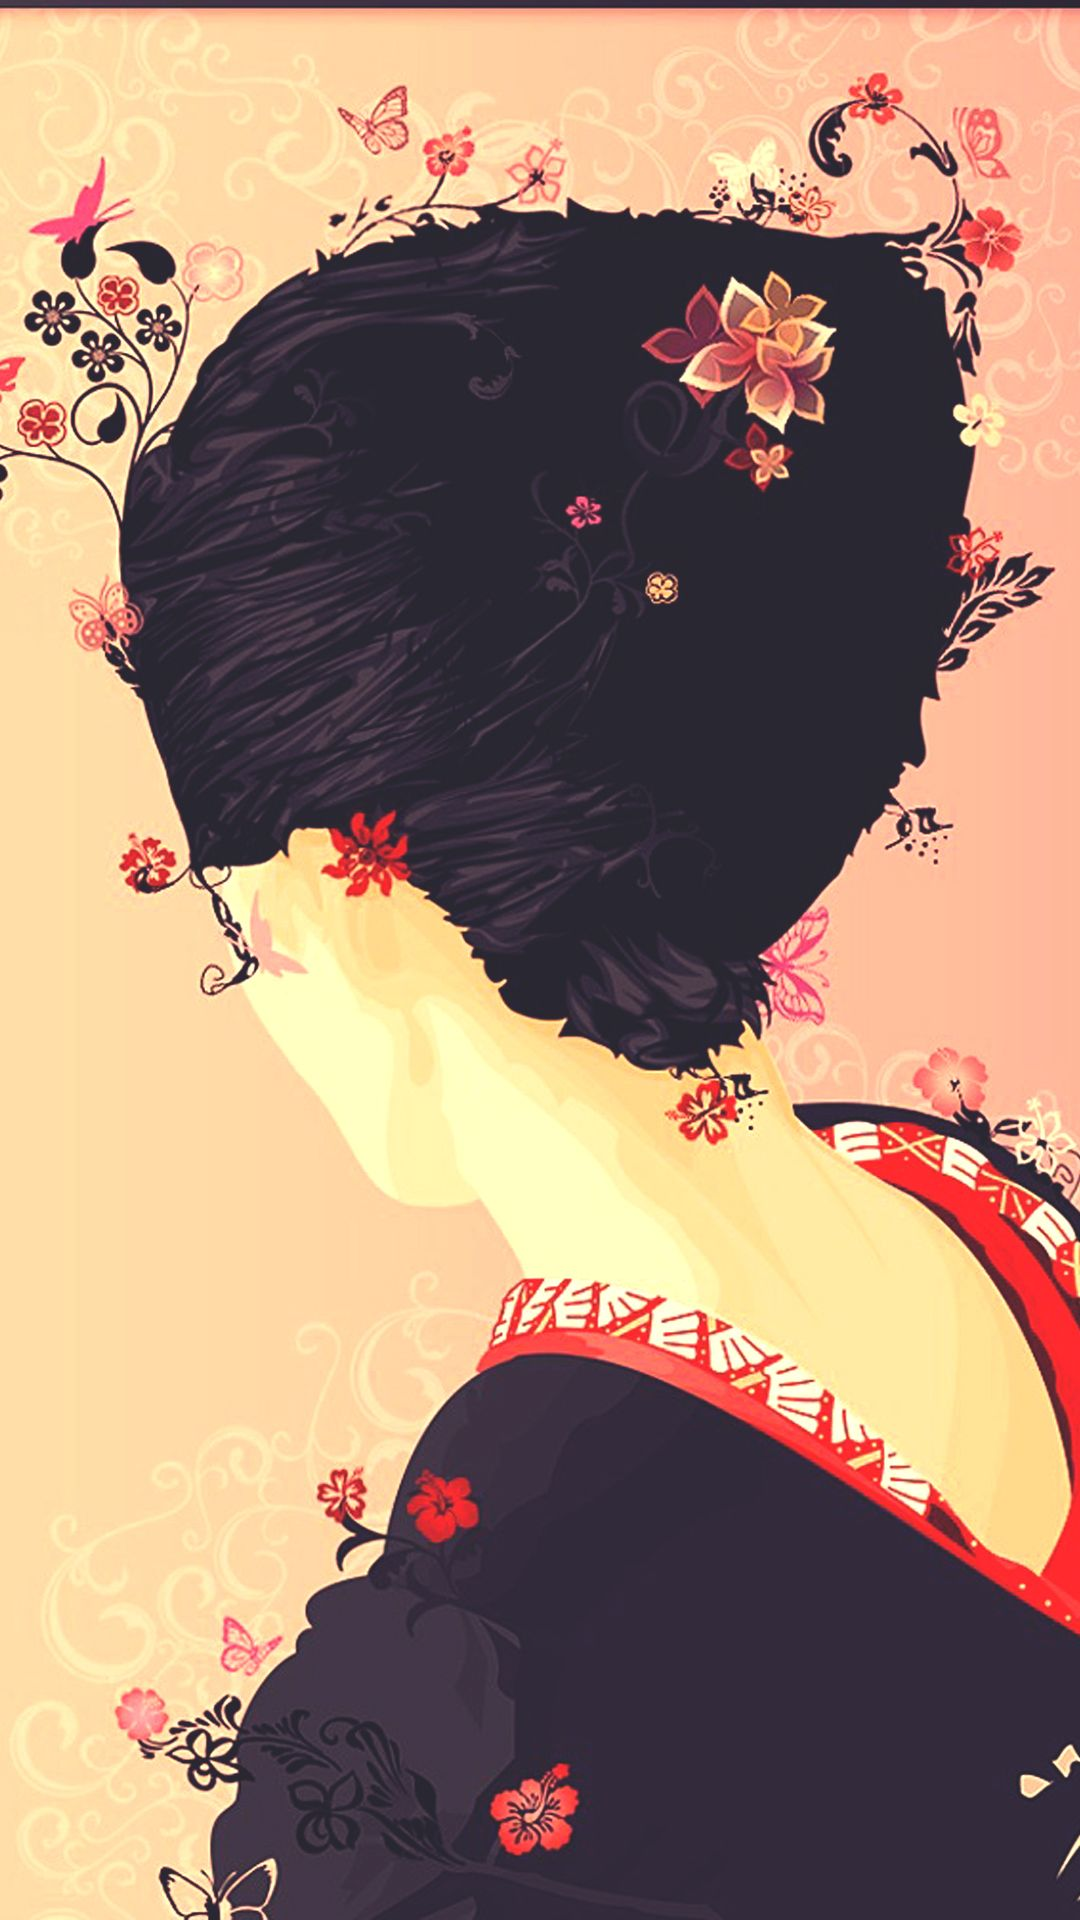 Top 9 Hipster Girl Wallpaper Full Hd For Your Android Or Iphone Wallpapers Android Iphone Wallpaper Geisha Illustration Android Wallpaper Girl Wallpaper